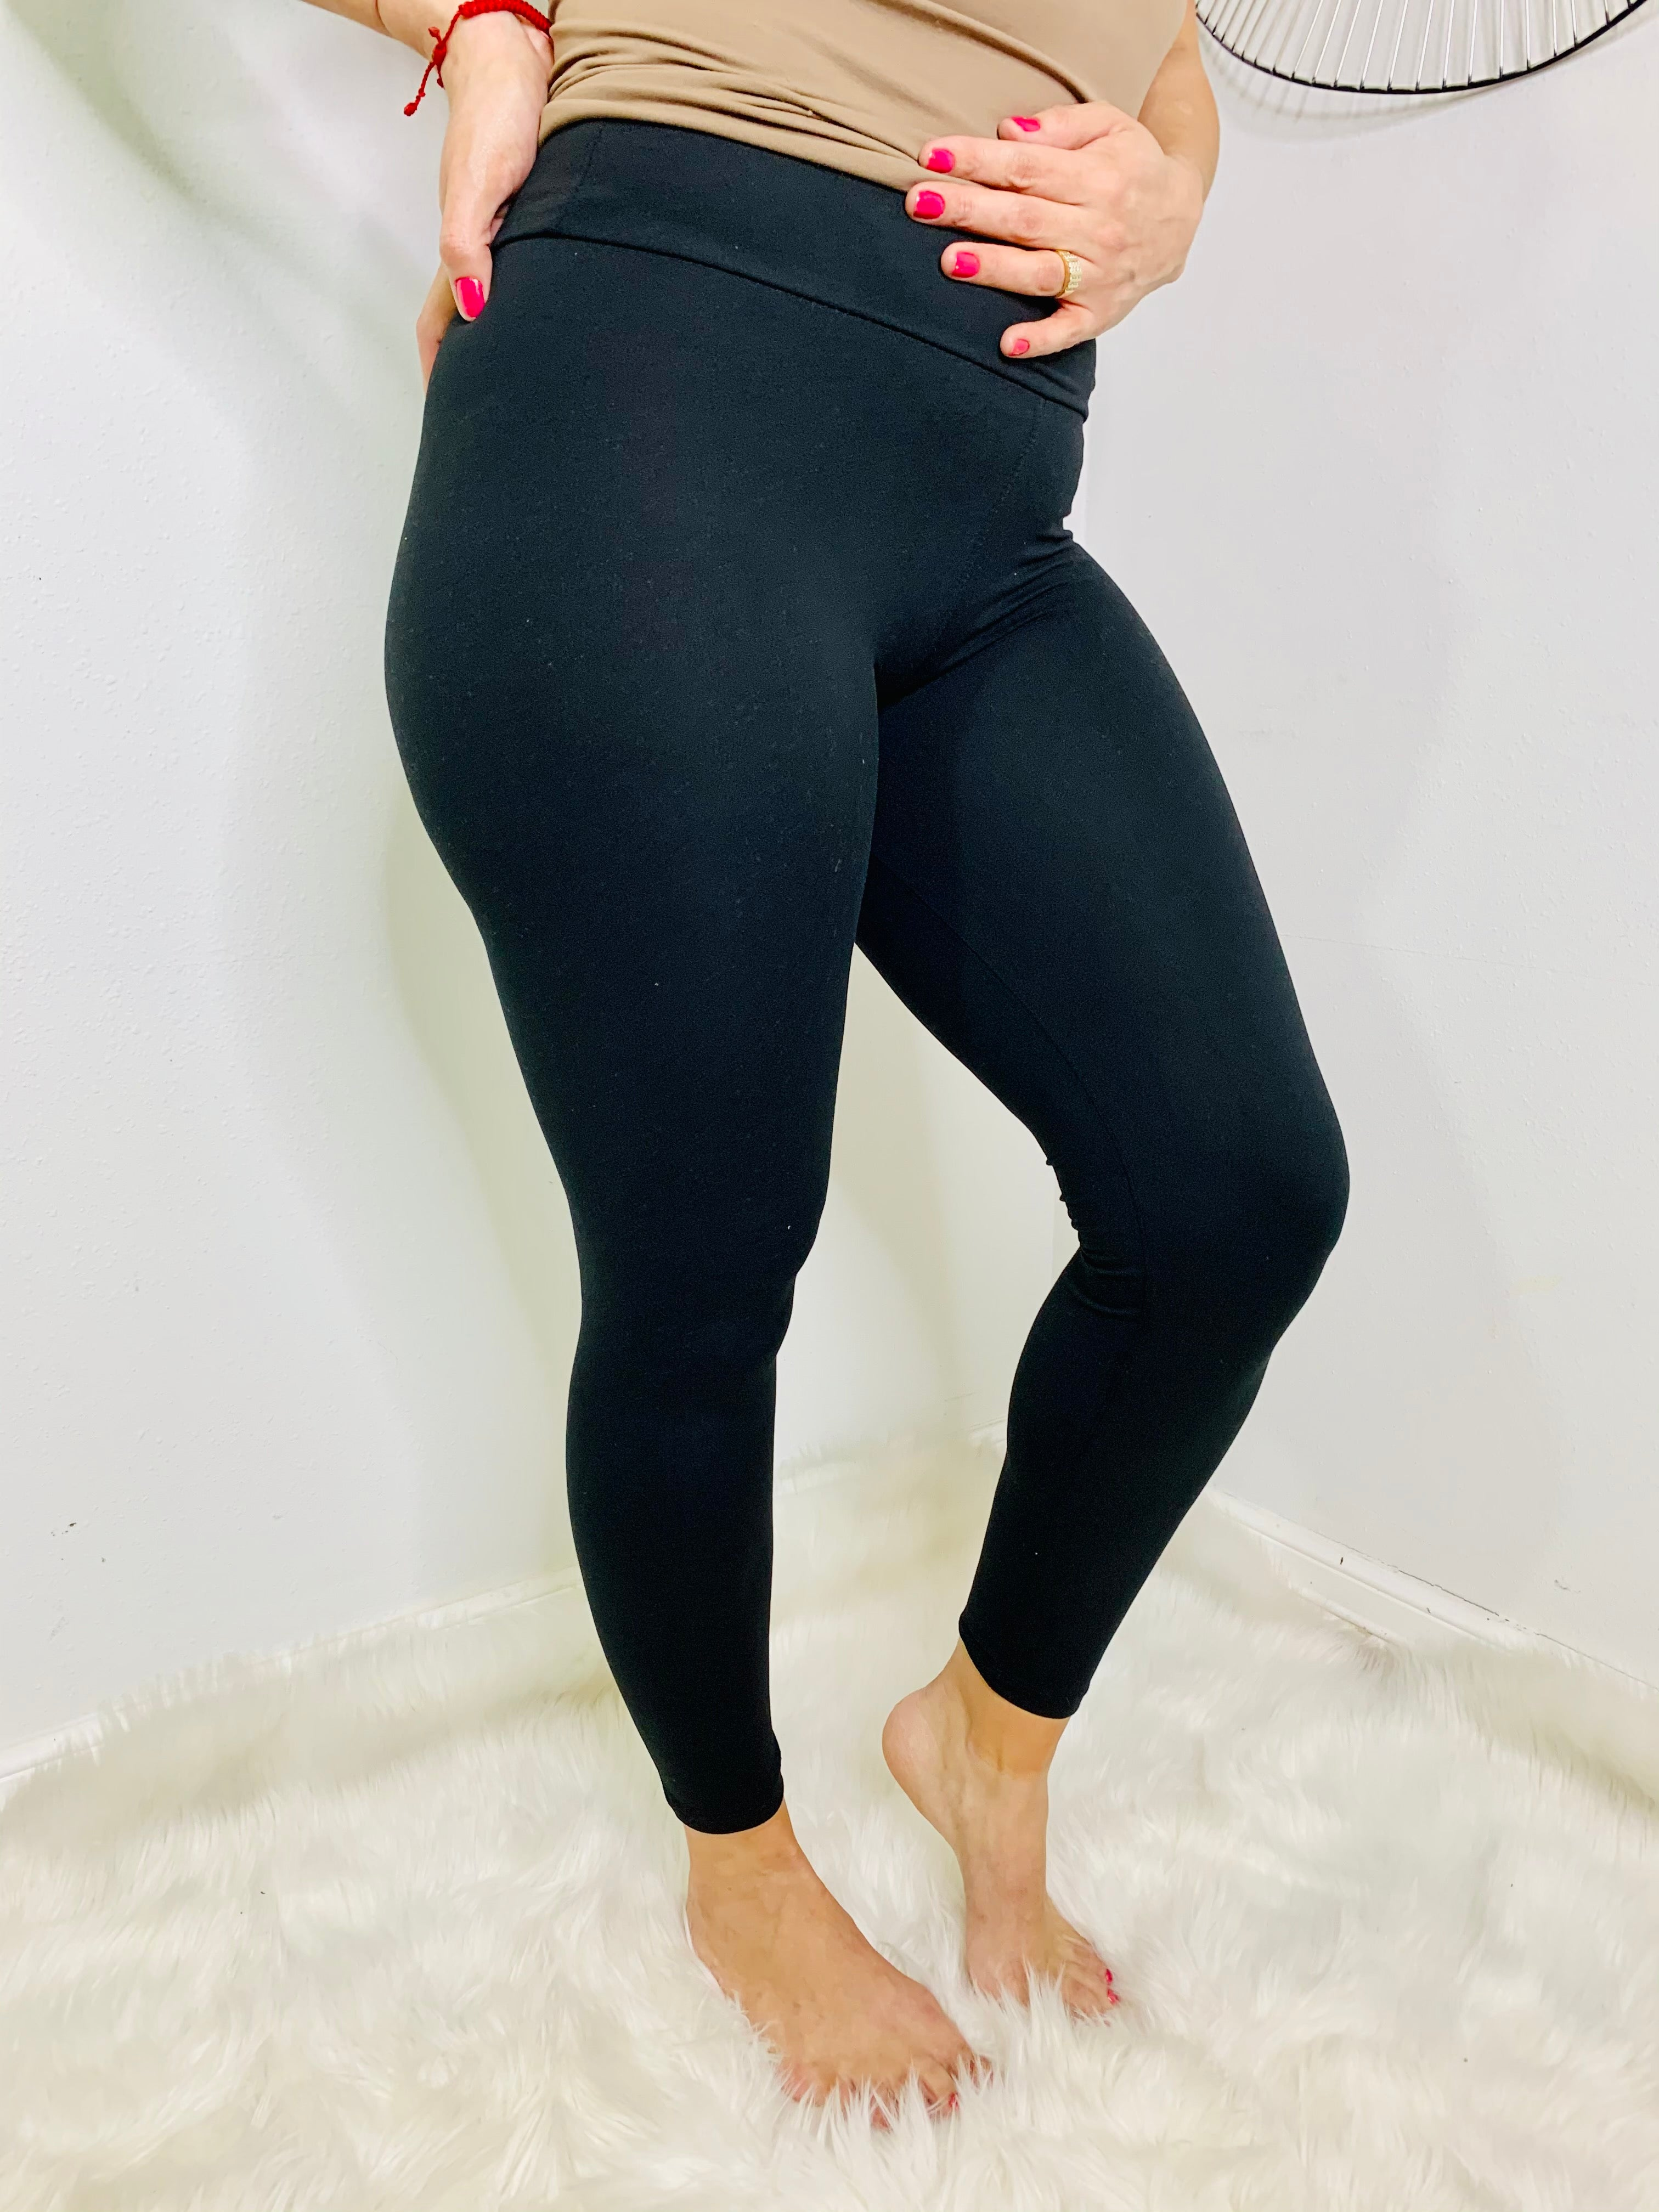 Plus Black Leggings